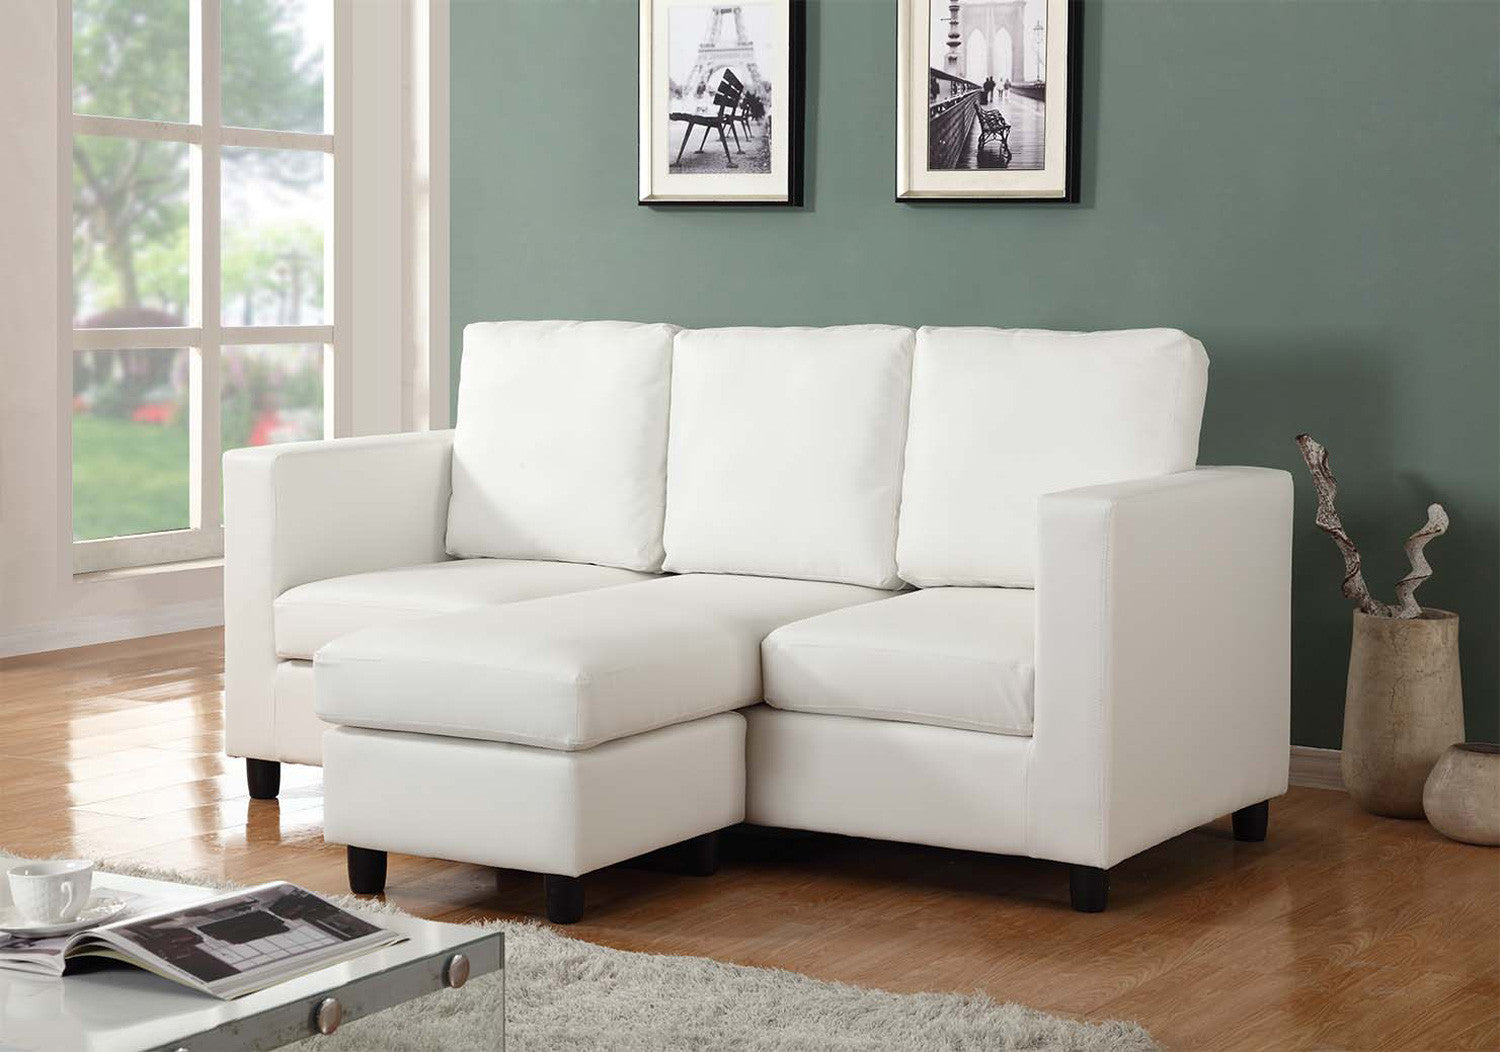 Urban Cali Newport Cream Eco Leather Small Condo Apartment Sectional